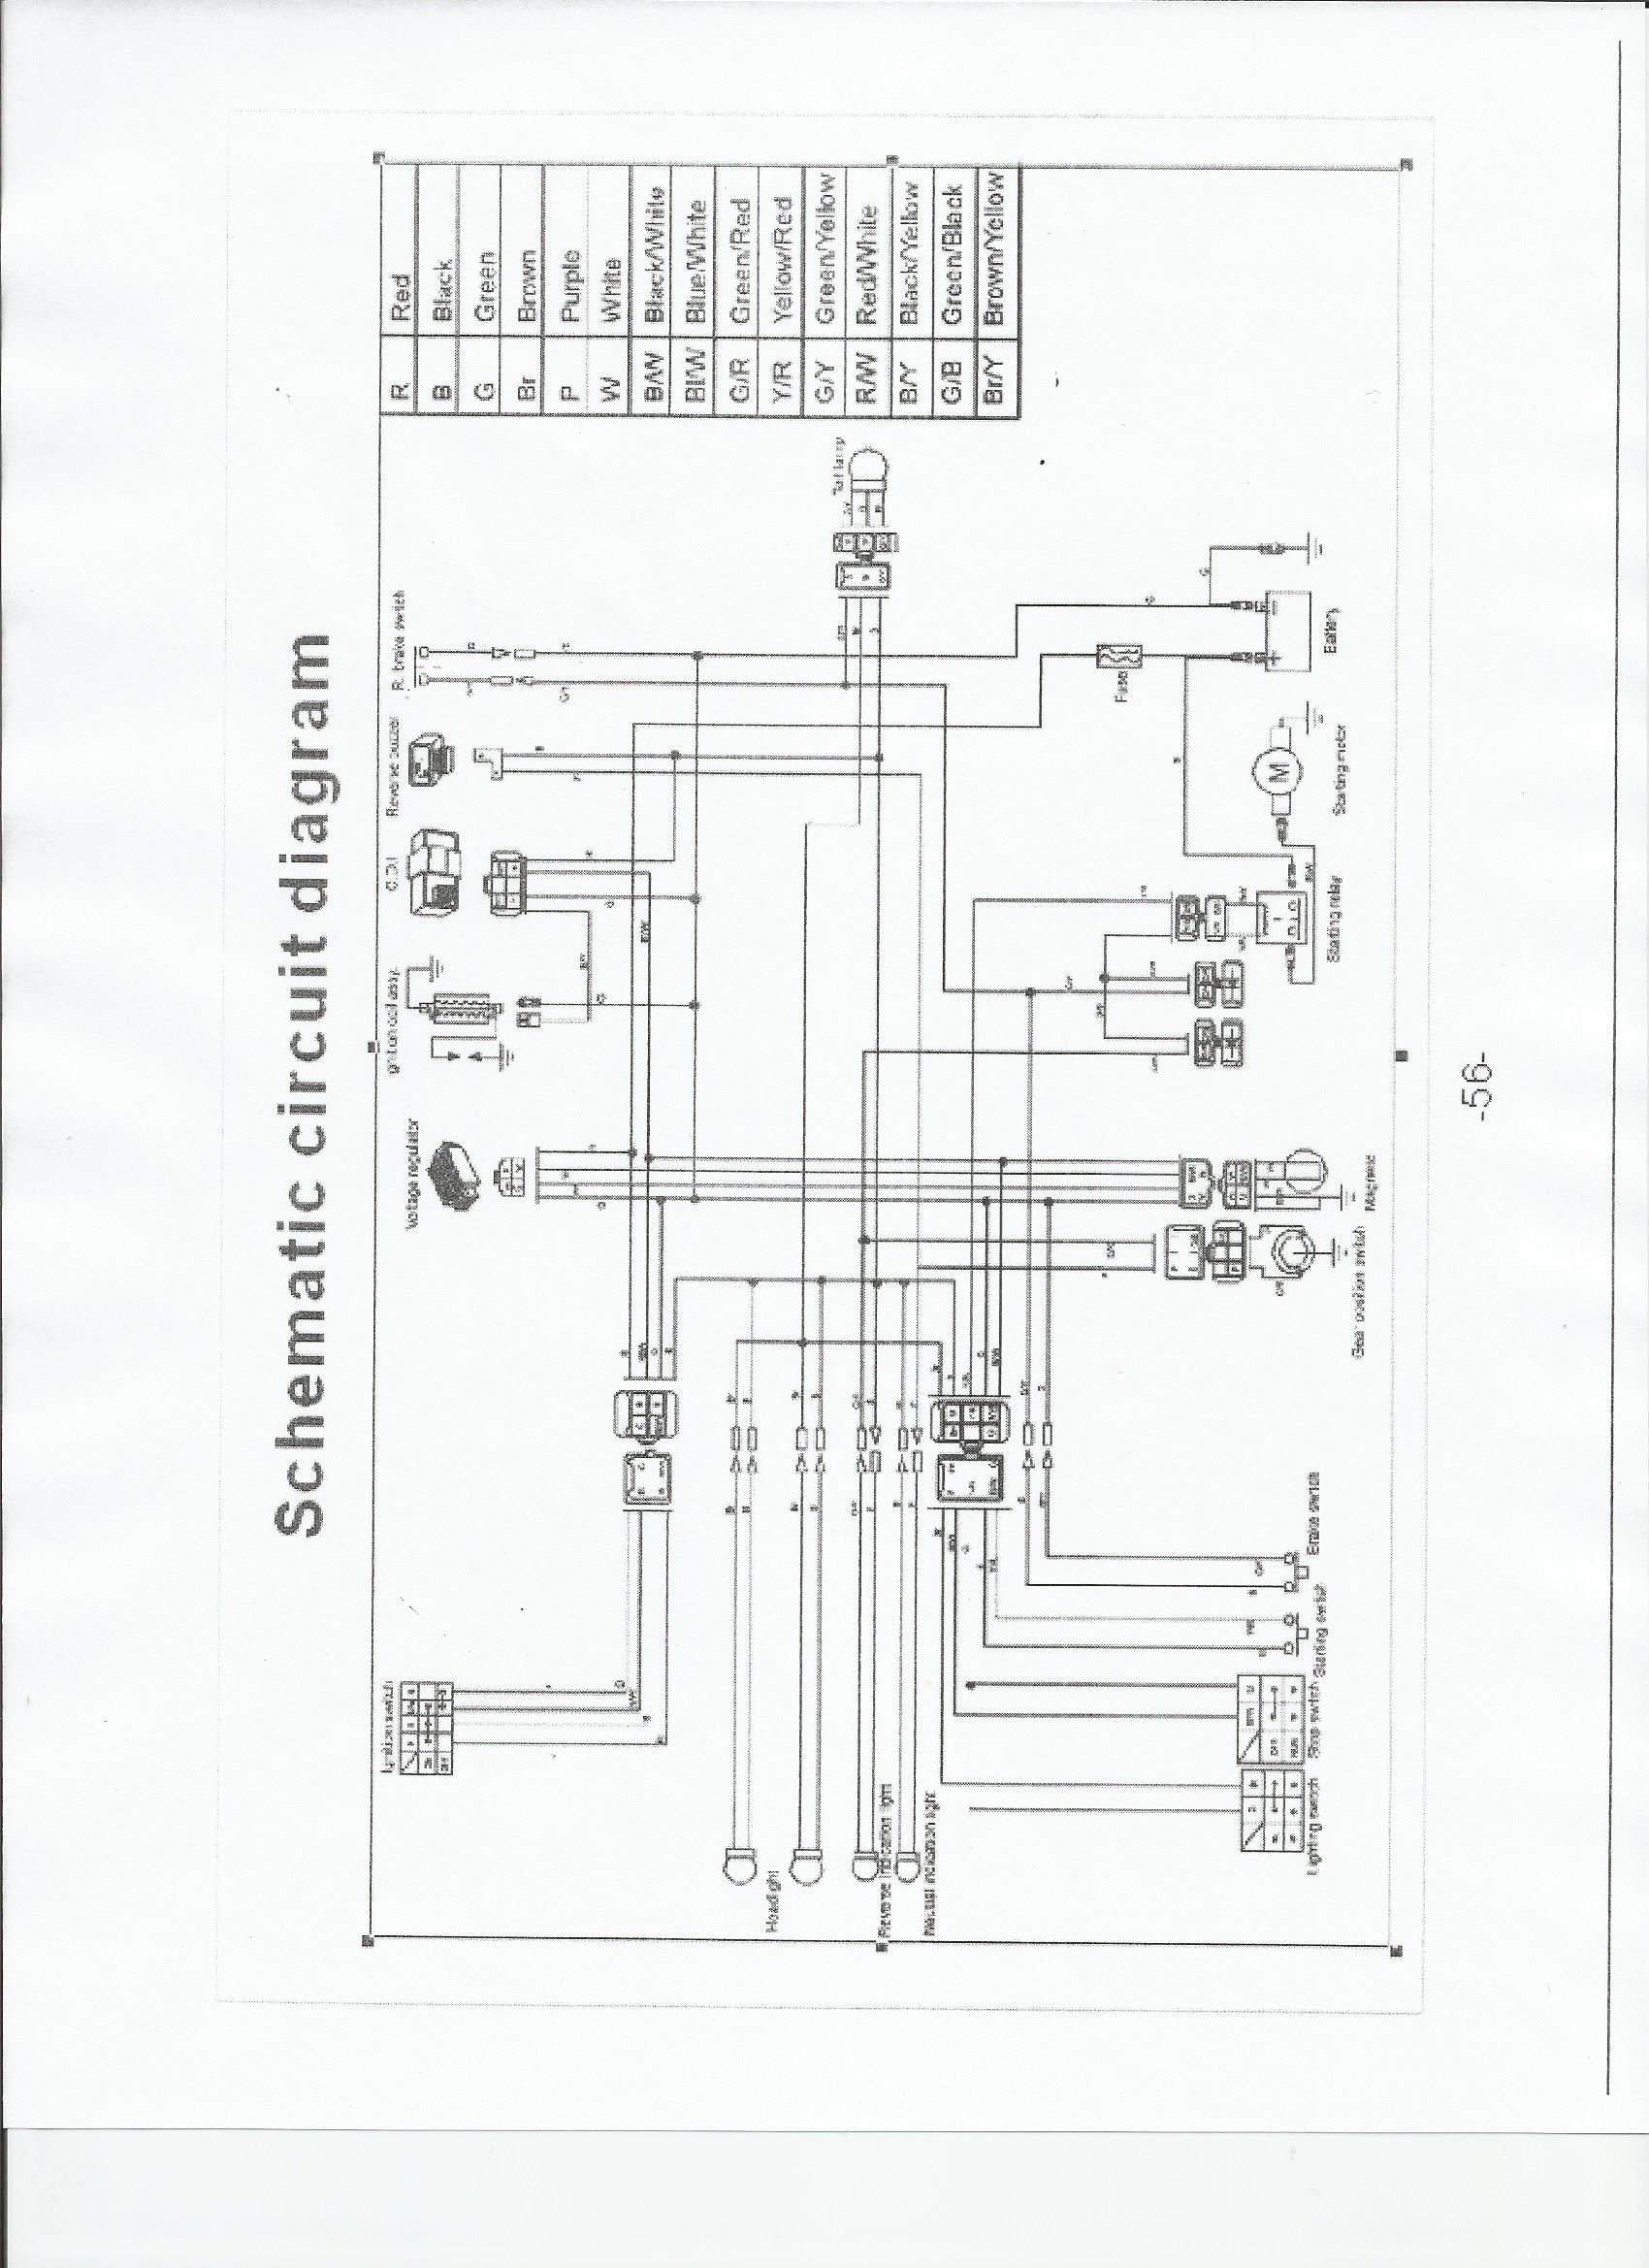 taotao mini and youth atv wiring schematic familygokarts support taotao atv 110cc at Tao Tao Atv Parts Diagram